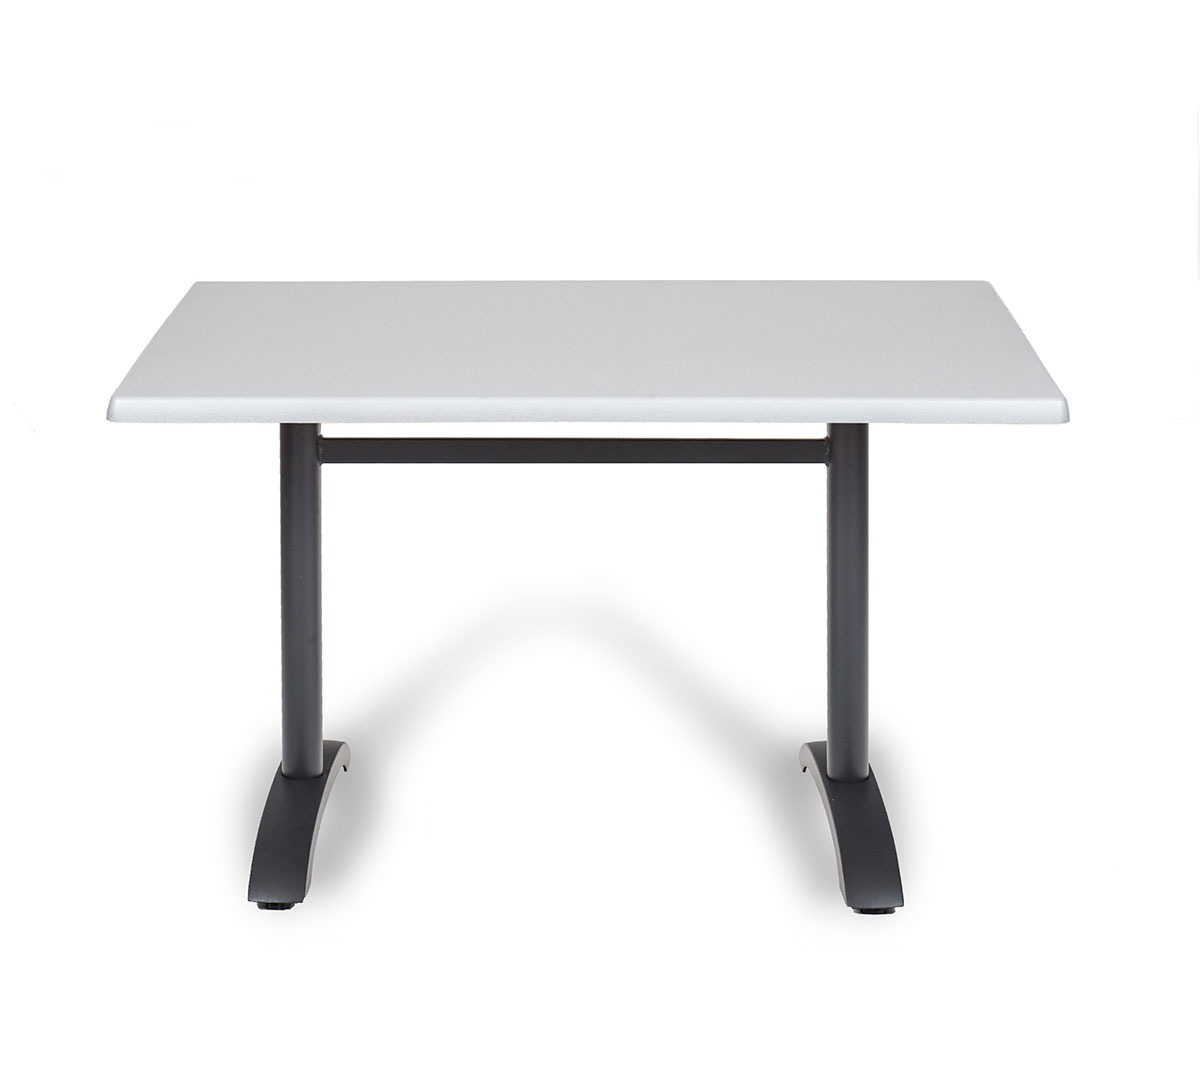 Mesa Oporto a 75 rectangular aluminio color grafito tablero top plata